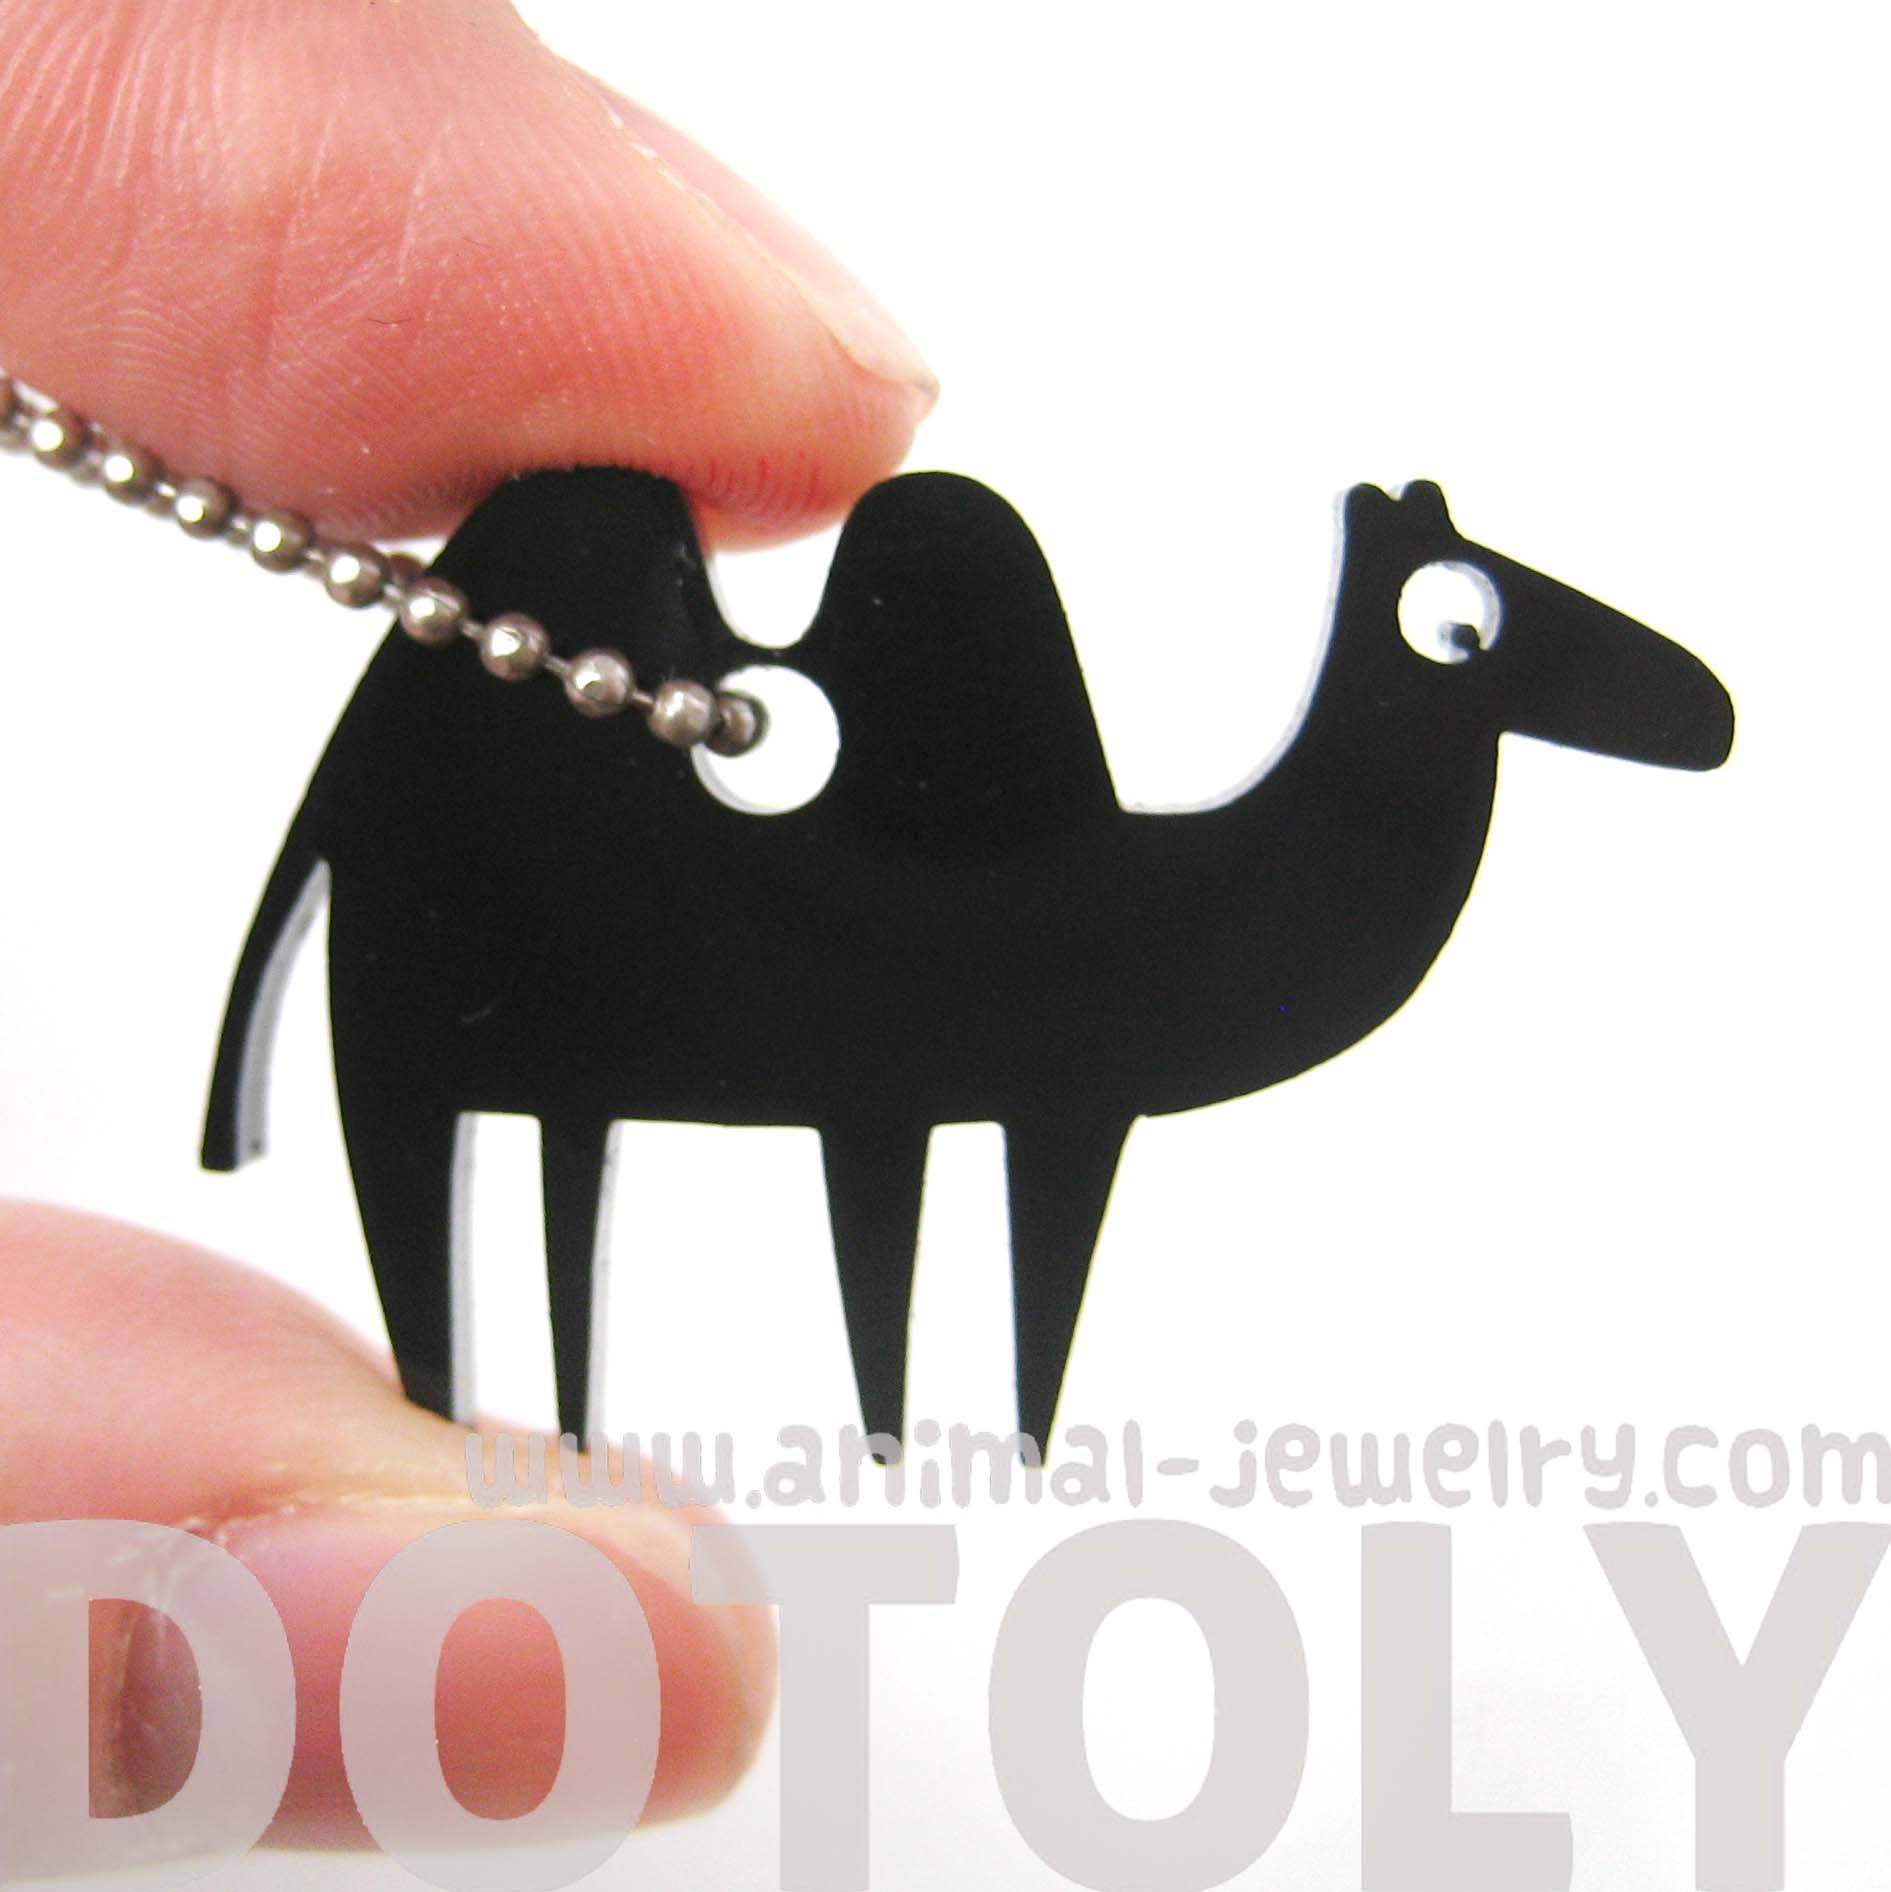 camel-silhouette-shaped-pendant-necklace-in-black-acrylic-animal-jewelry